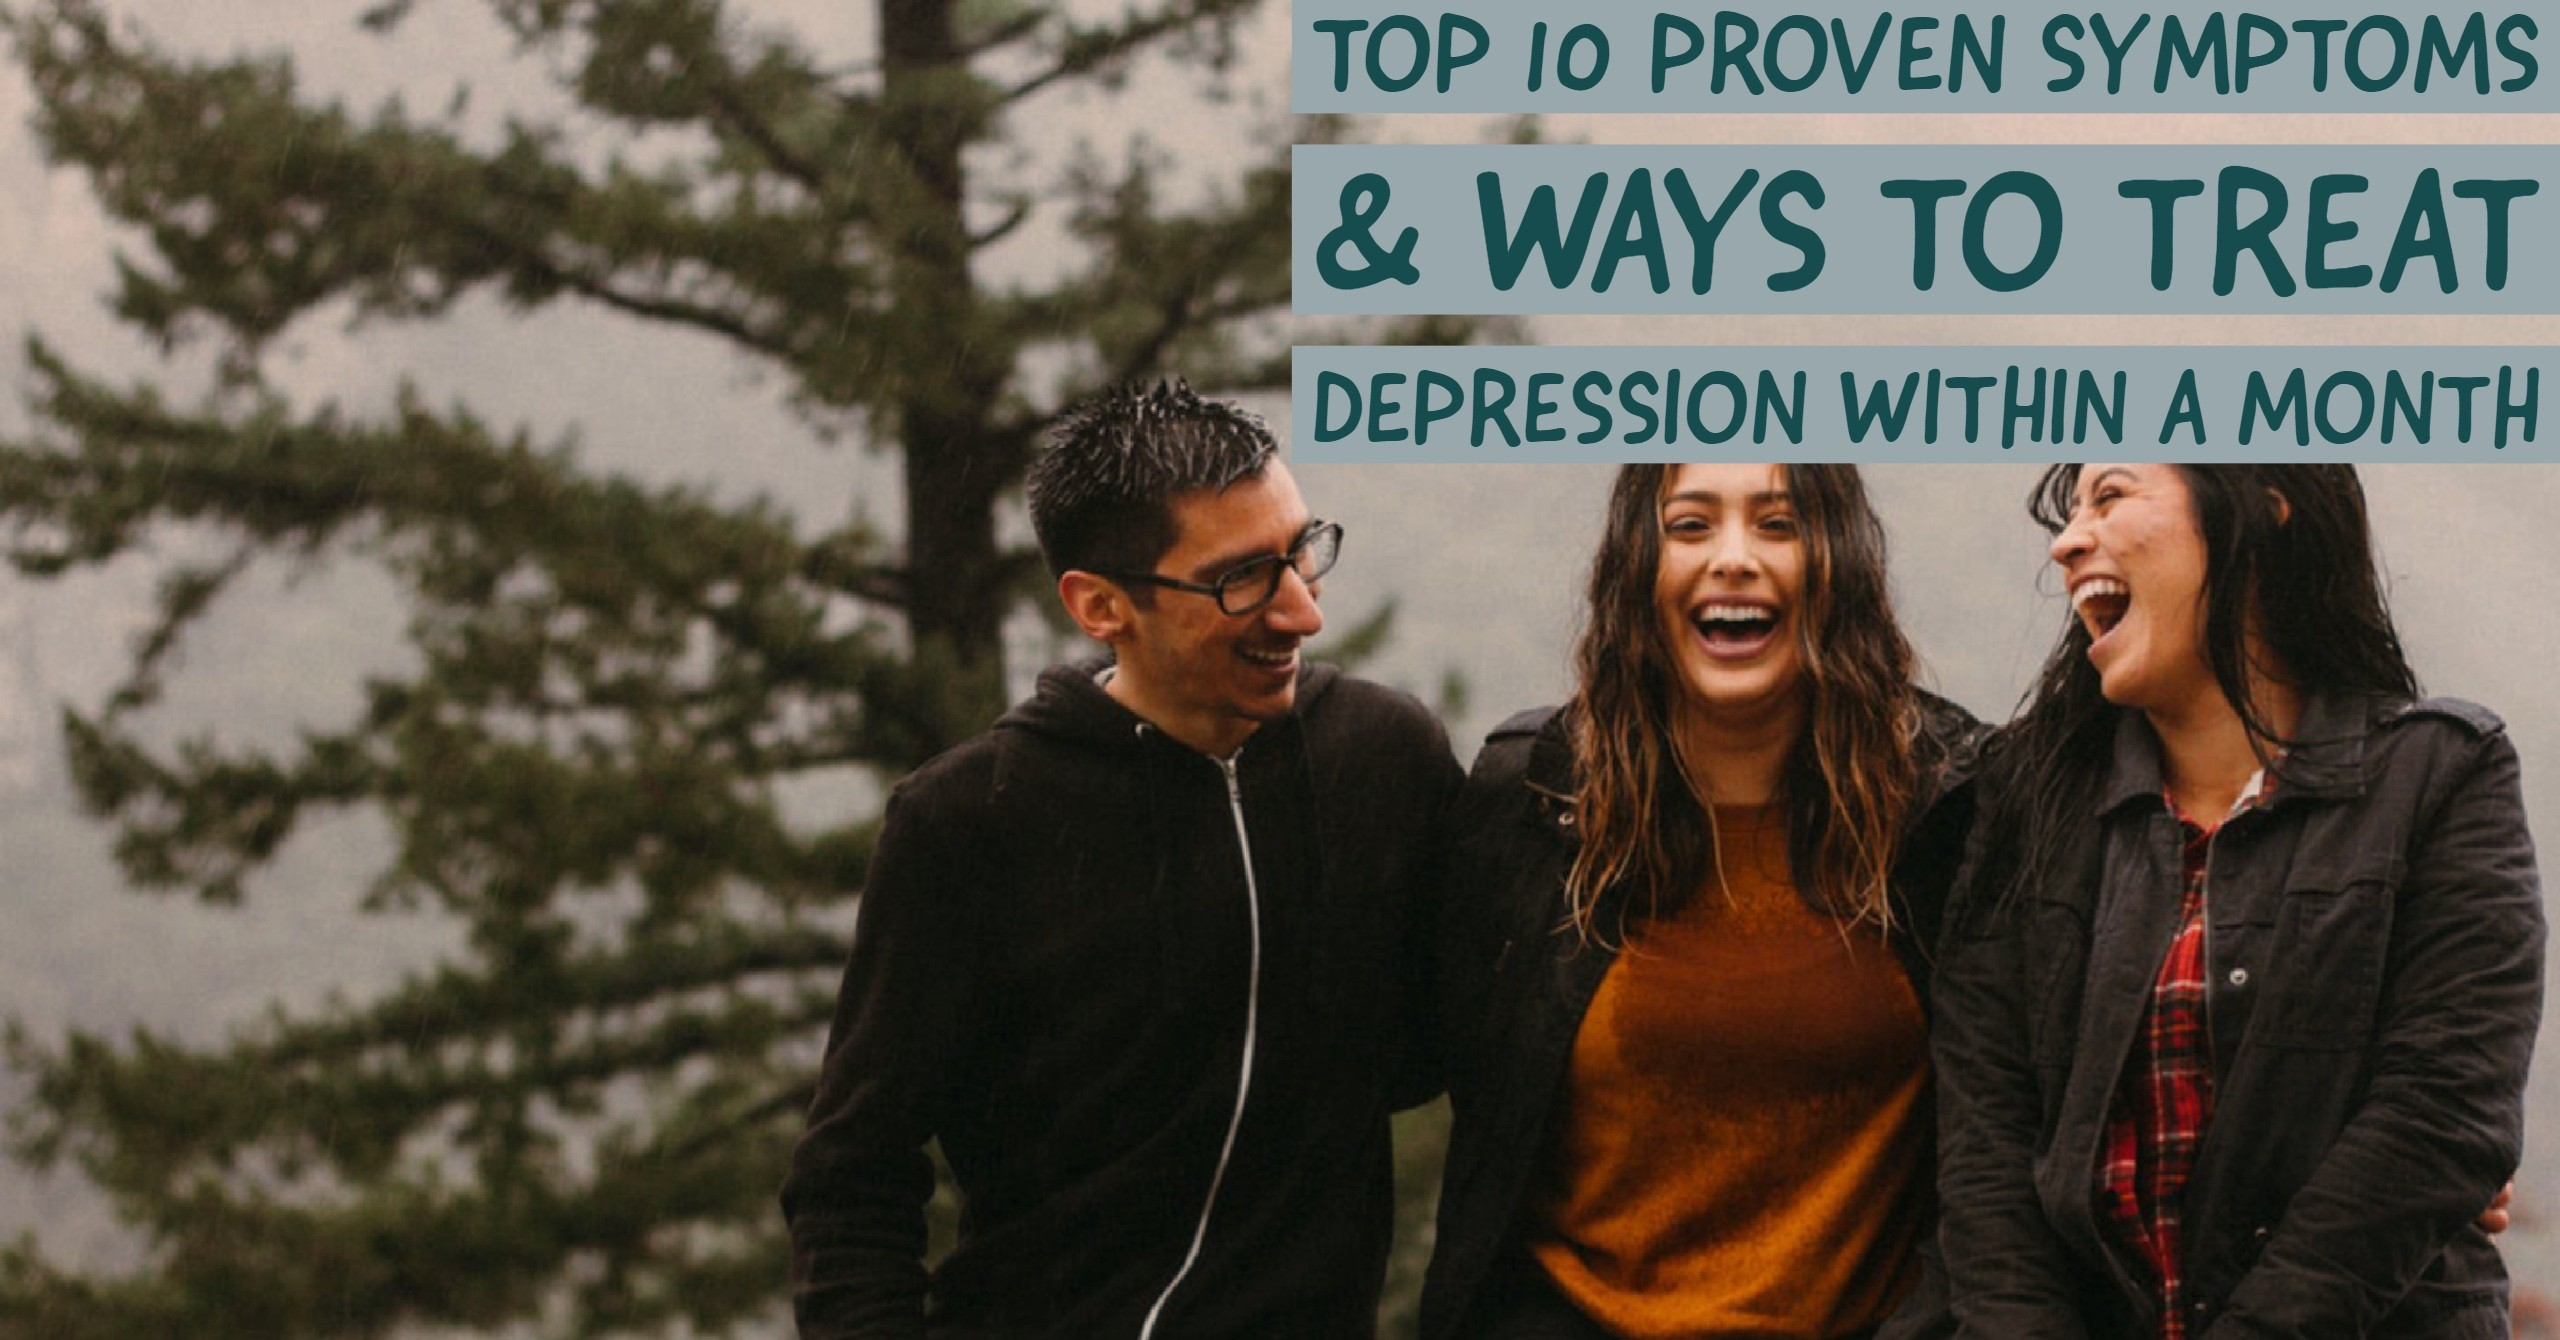 Top 10 Proven Symptoms & Ways to Treat Depression Within a Month